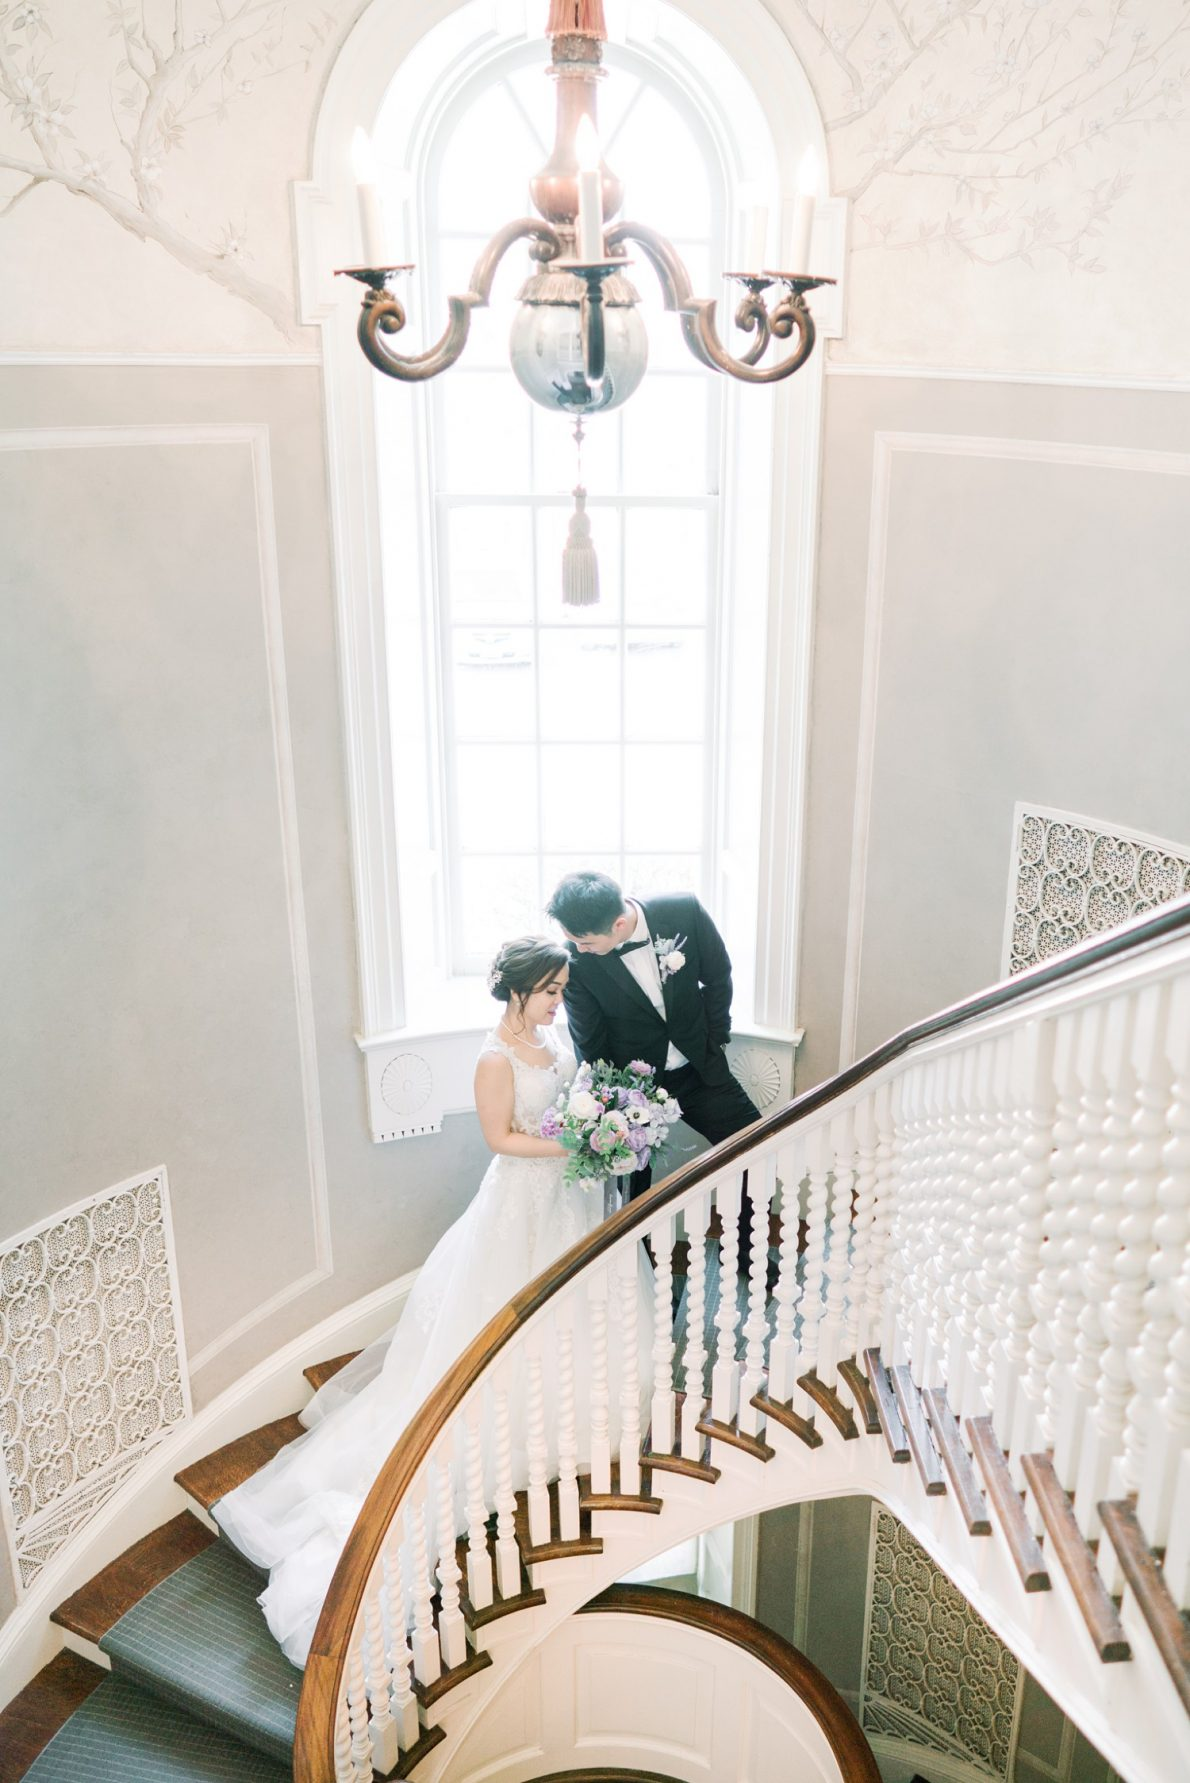 Bride and Groom portraits at stairs in Estates of Sunnybrook McLean House Toronto Wedding Photos